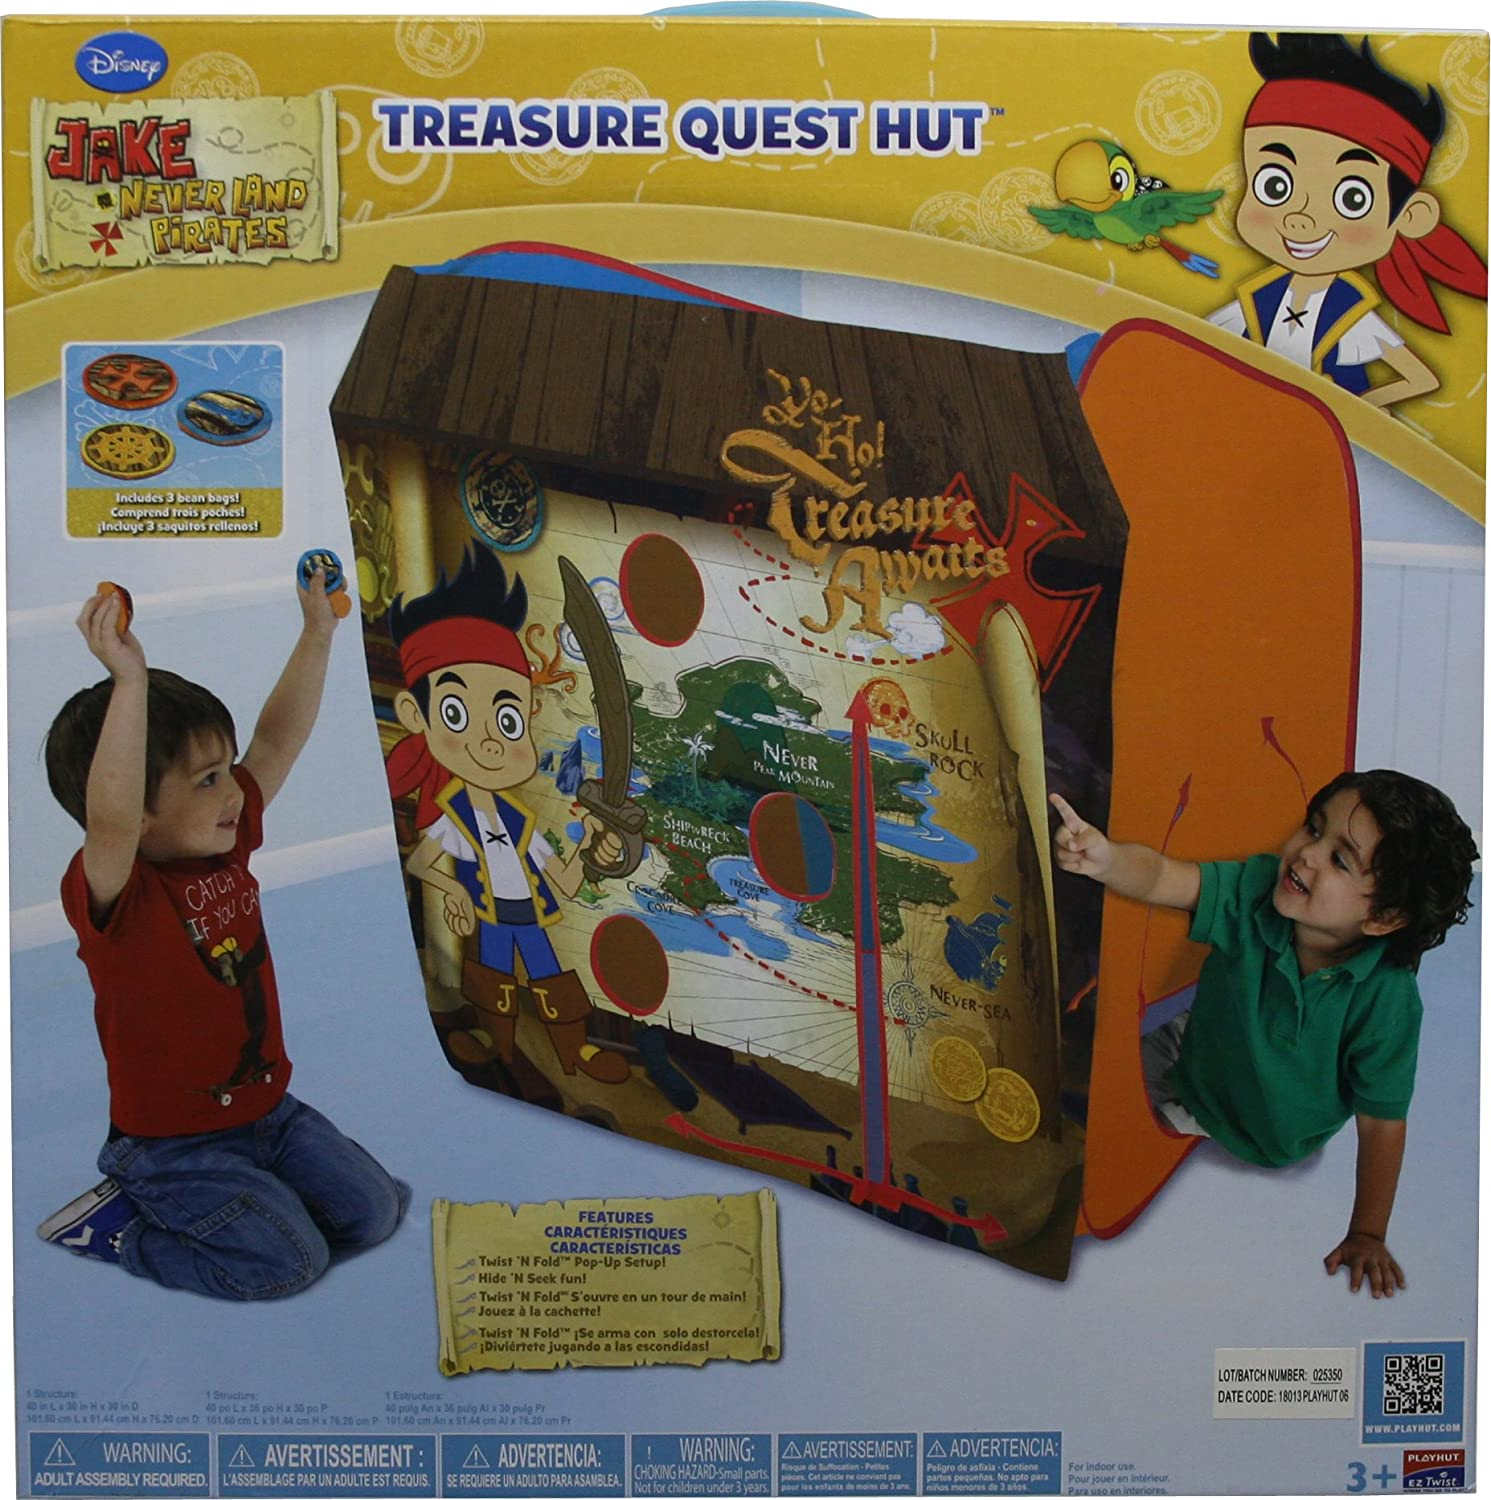 Disney Jake and the Never Land Pirates Treasure Quest Hut B00GHUK2OG